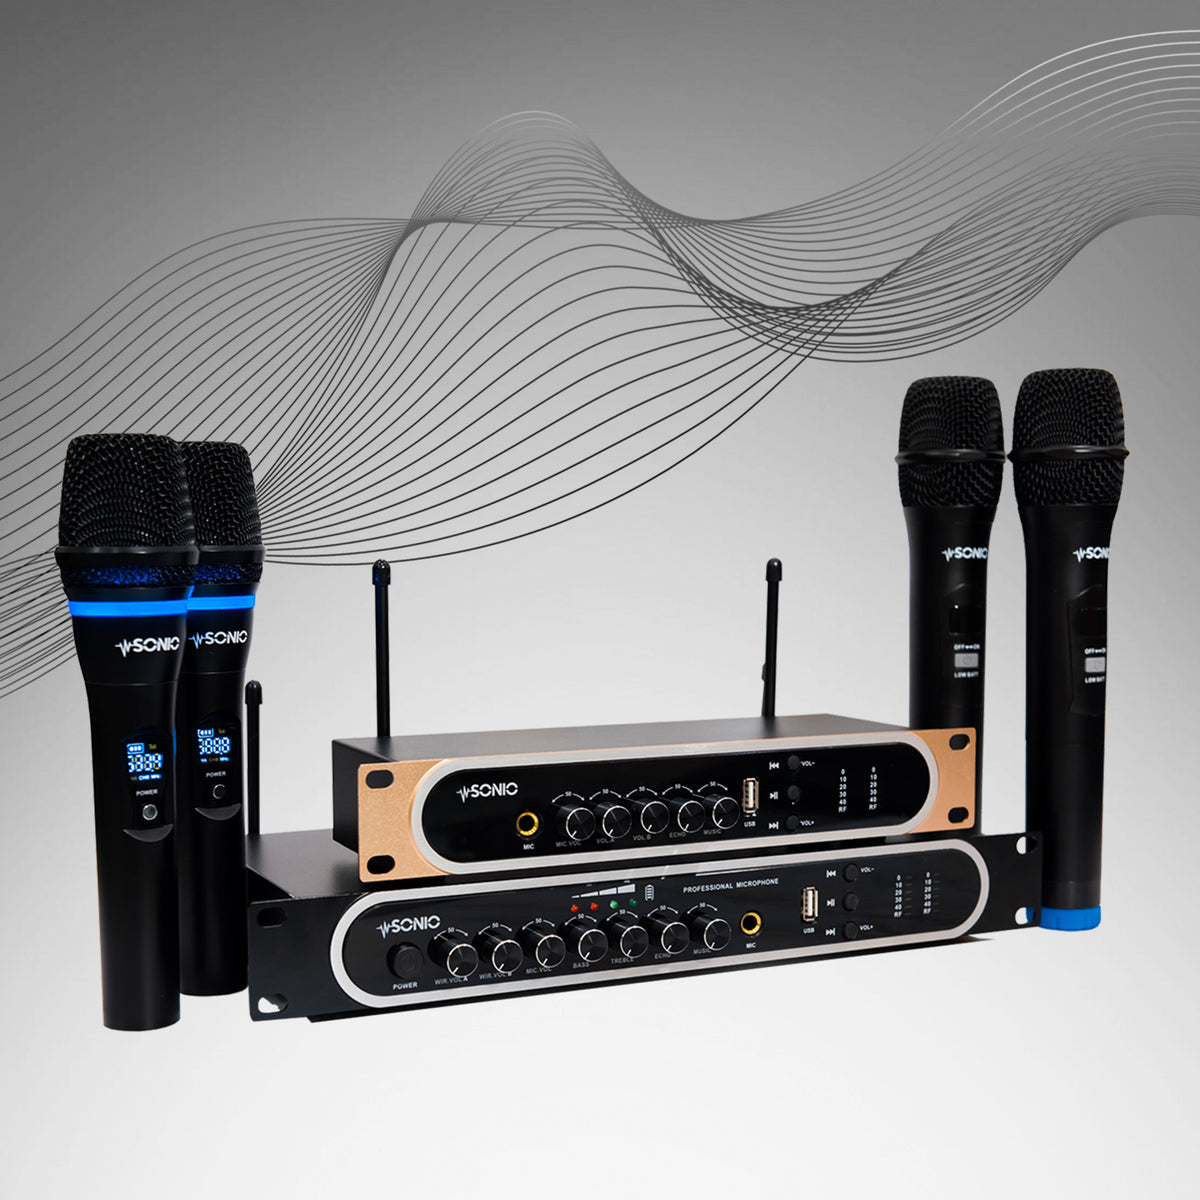 At SONIO, we know that the right gear can make a performance   We've developed our Wireless Microphone System to connect to your sound system. You can count on it to help you deliver your best vocal performance